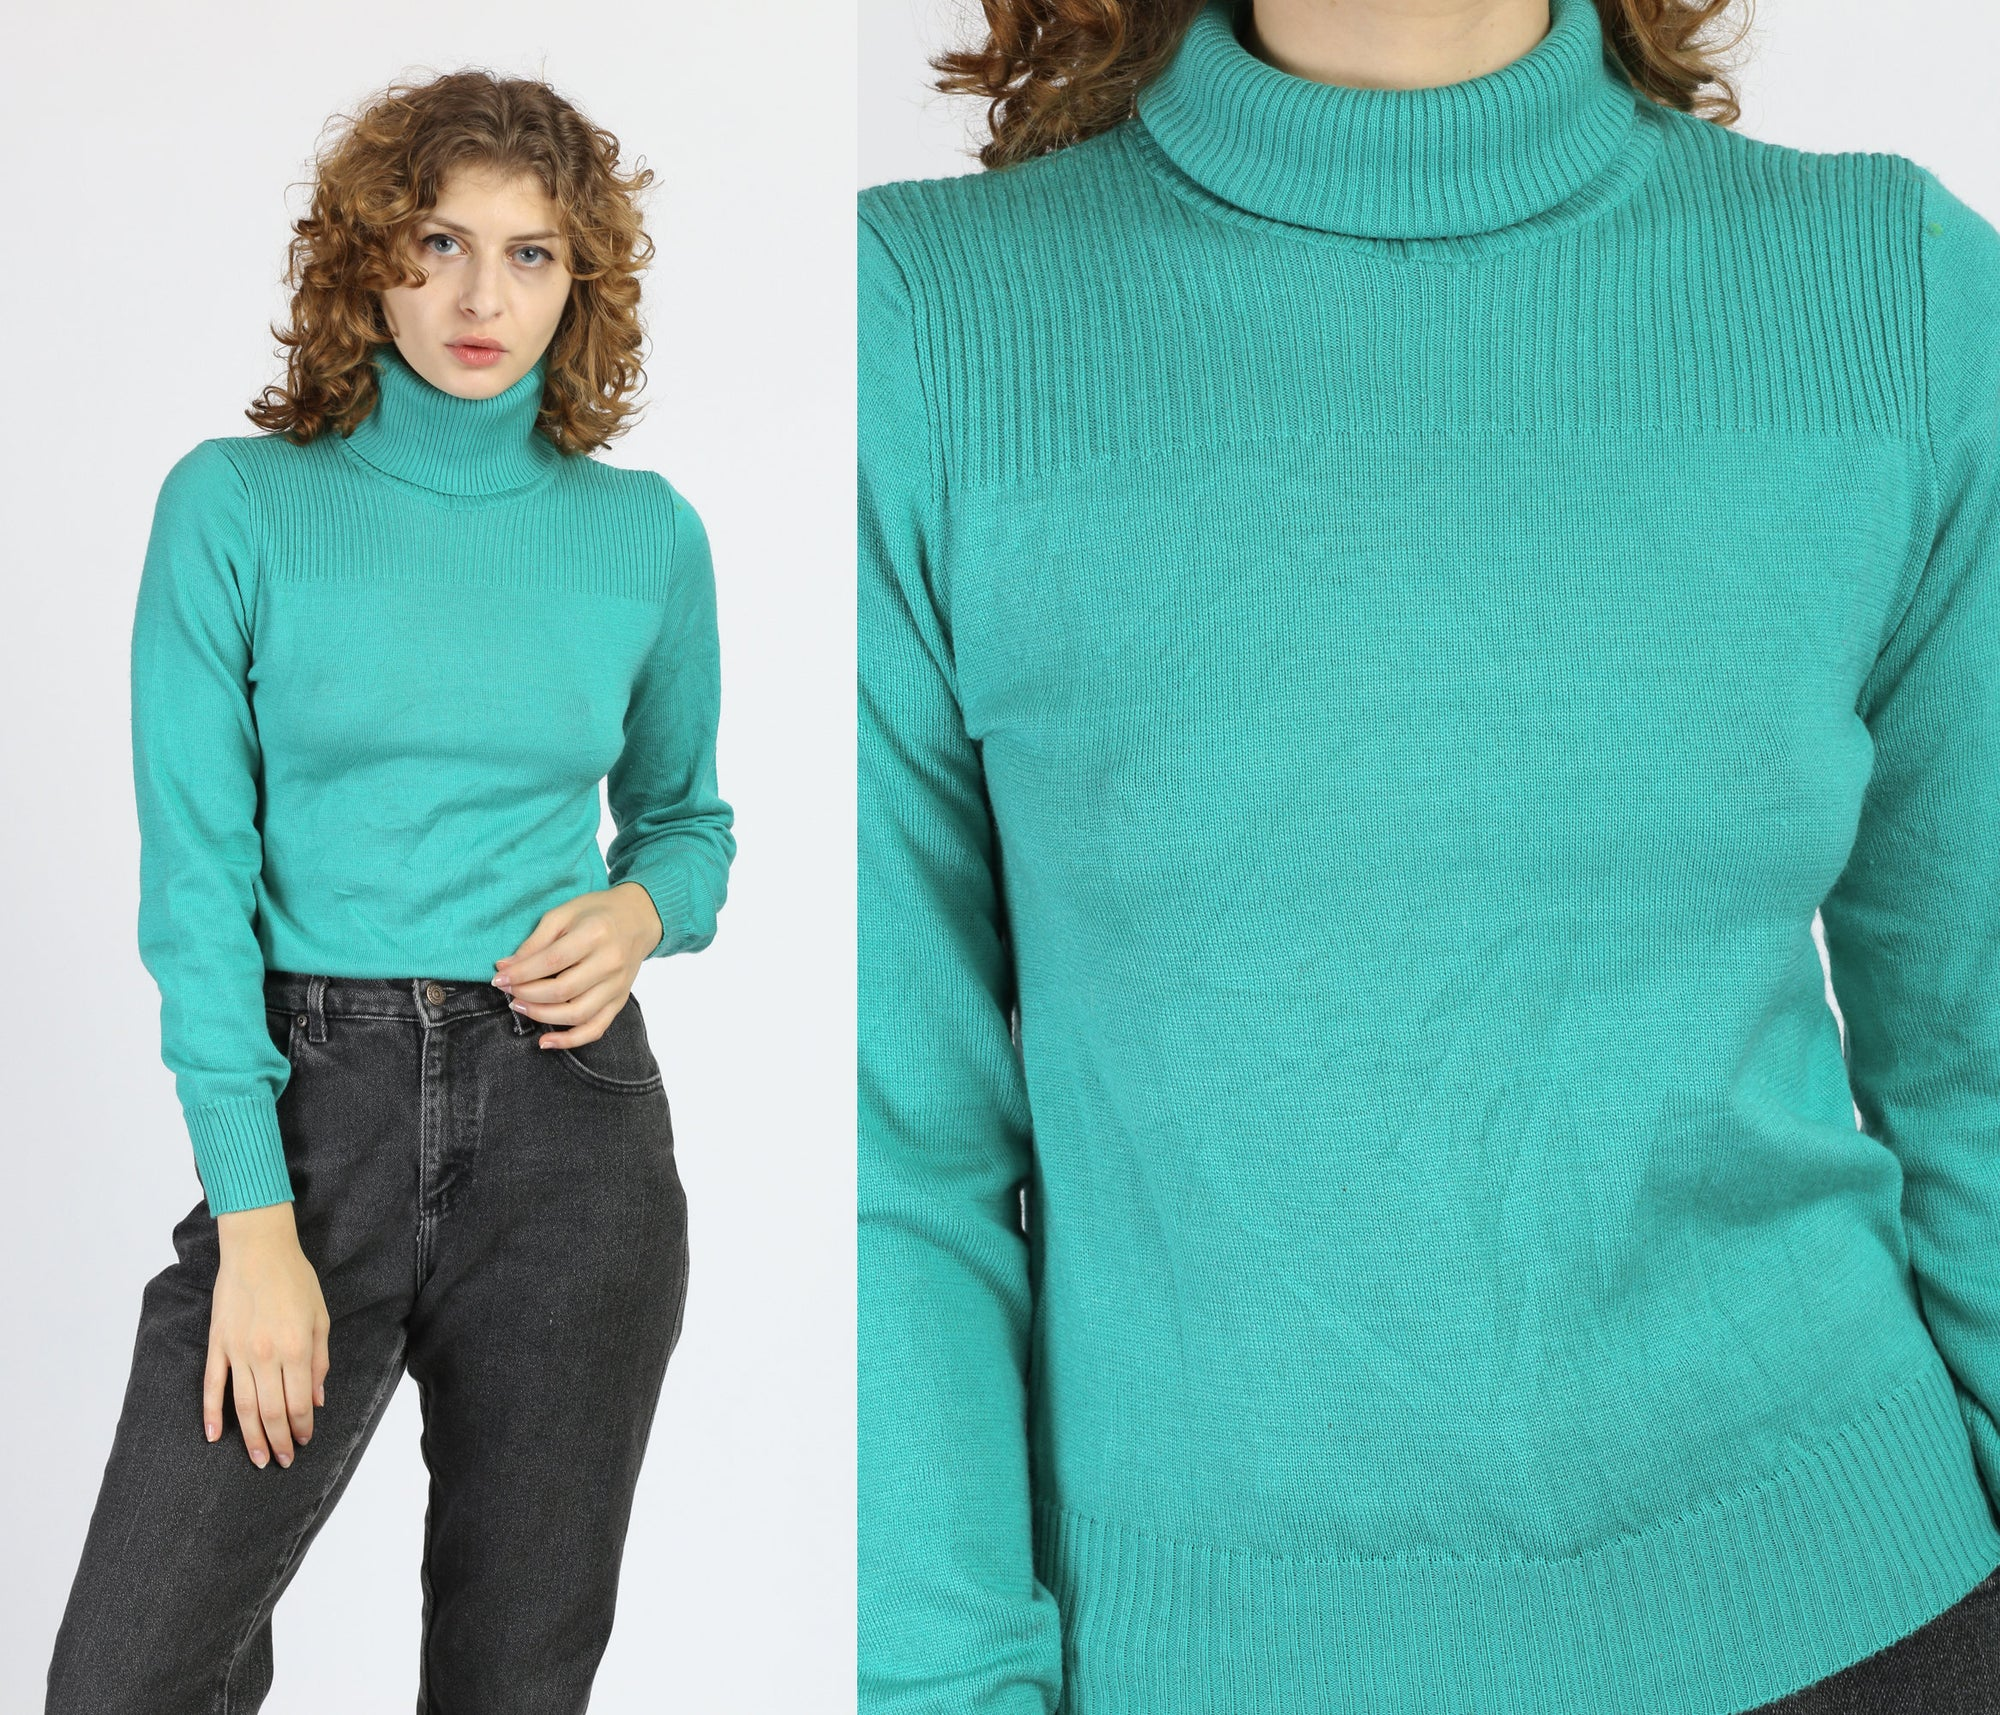 80s Teal Turtleneck Sweater - Small to Medium